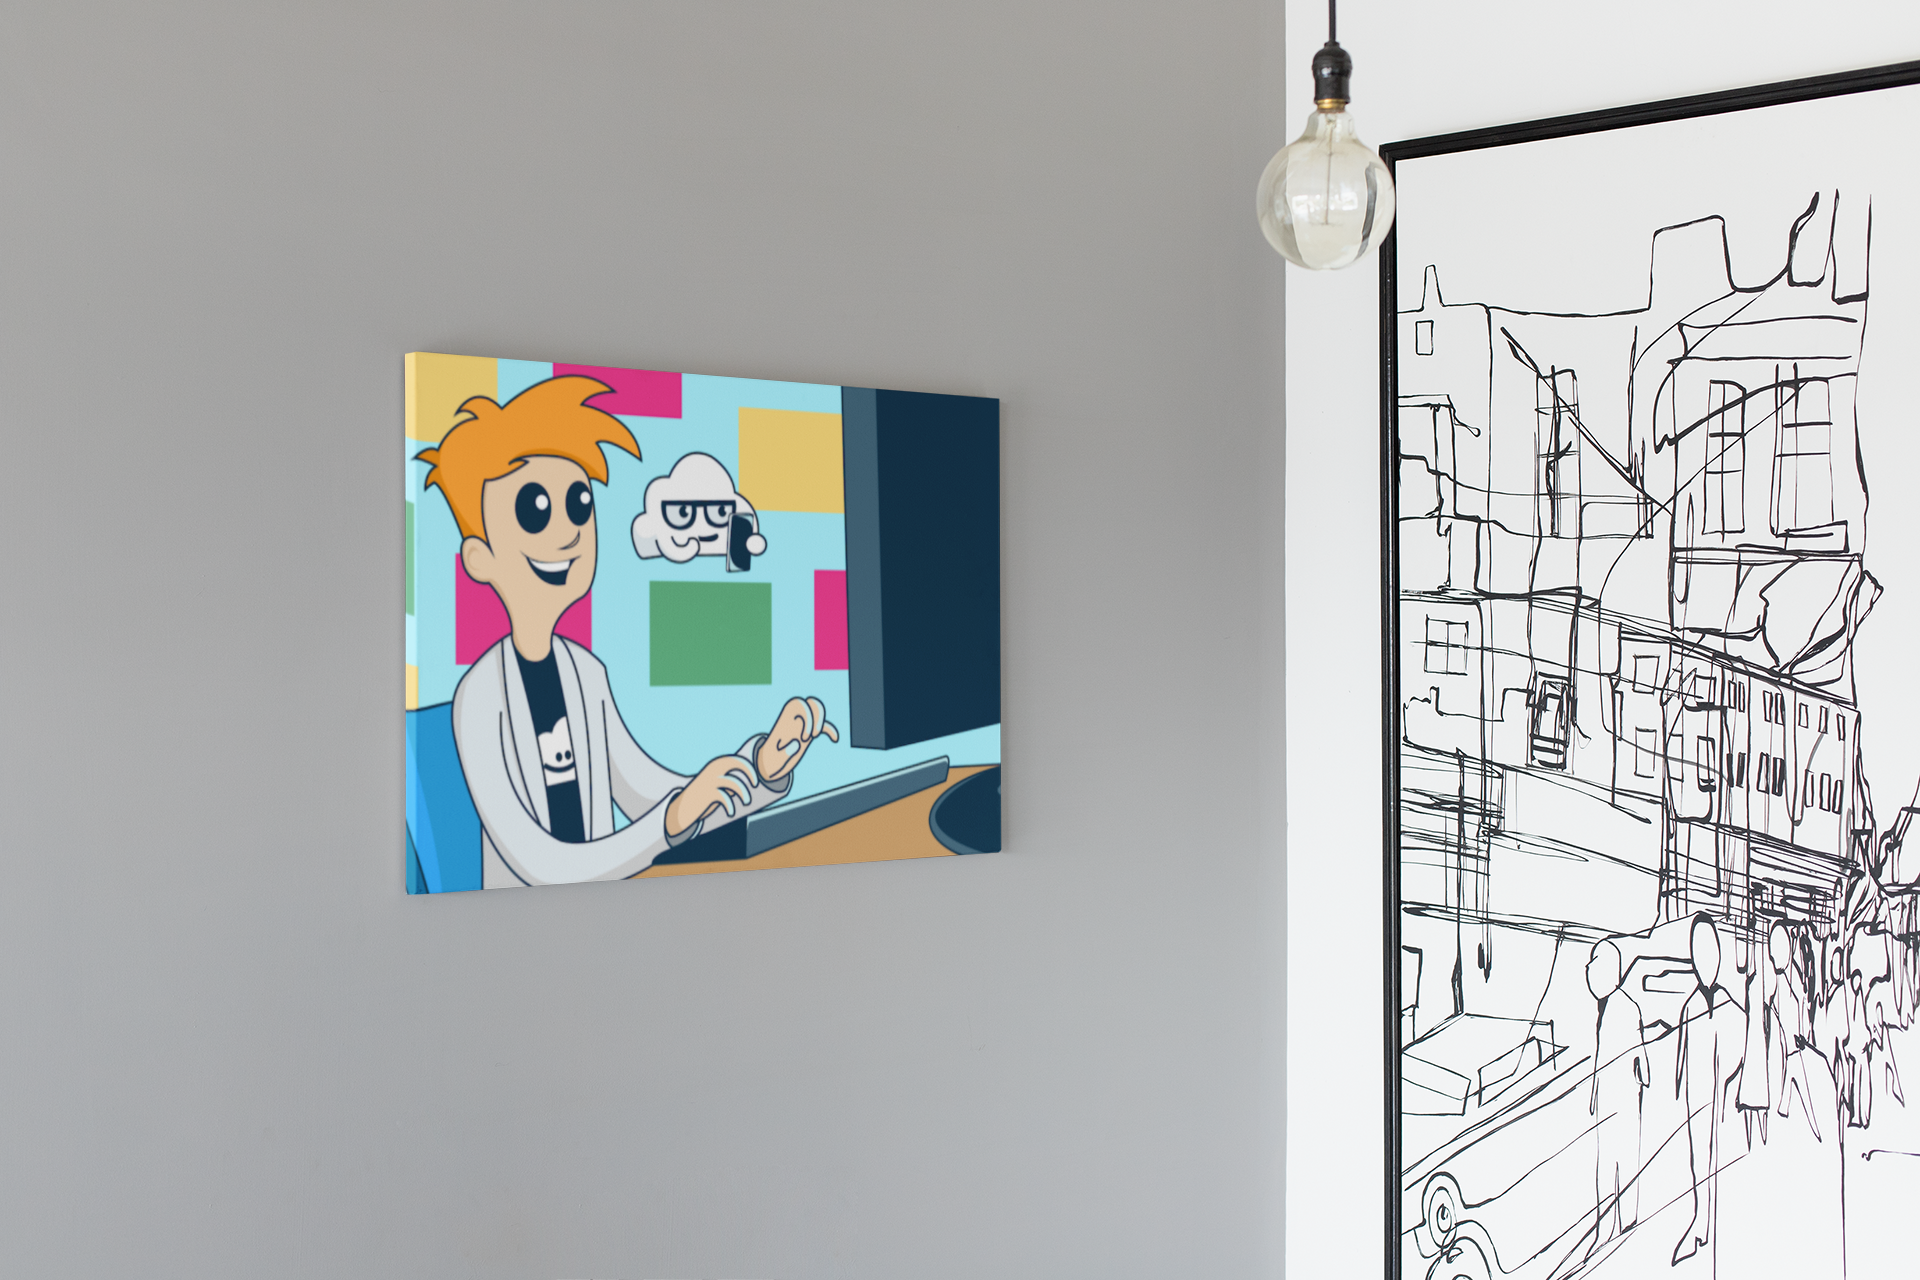 mockup-of-an-art-print-canvas-in-an-avant-garde-apartment-25871.png